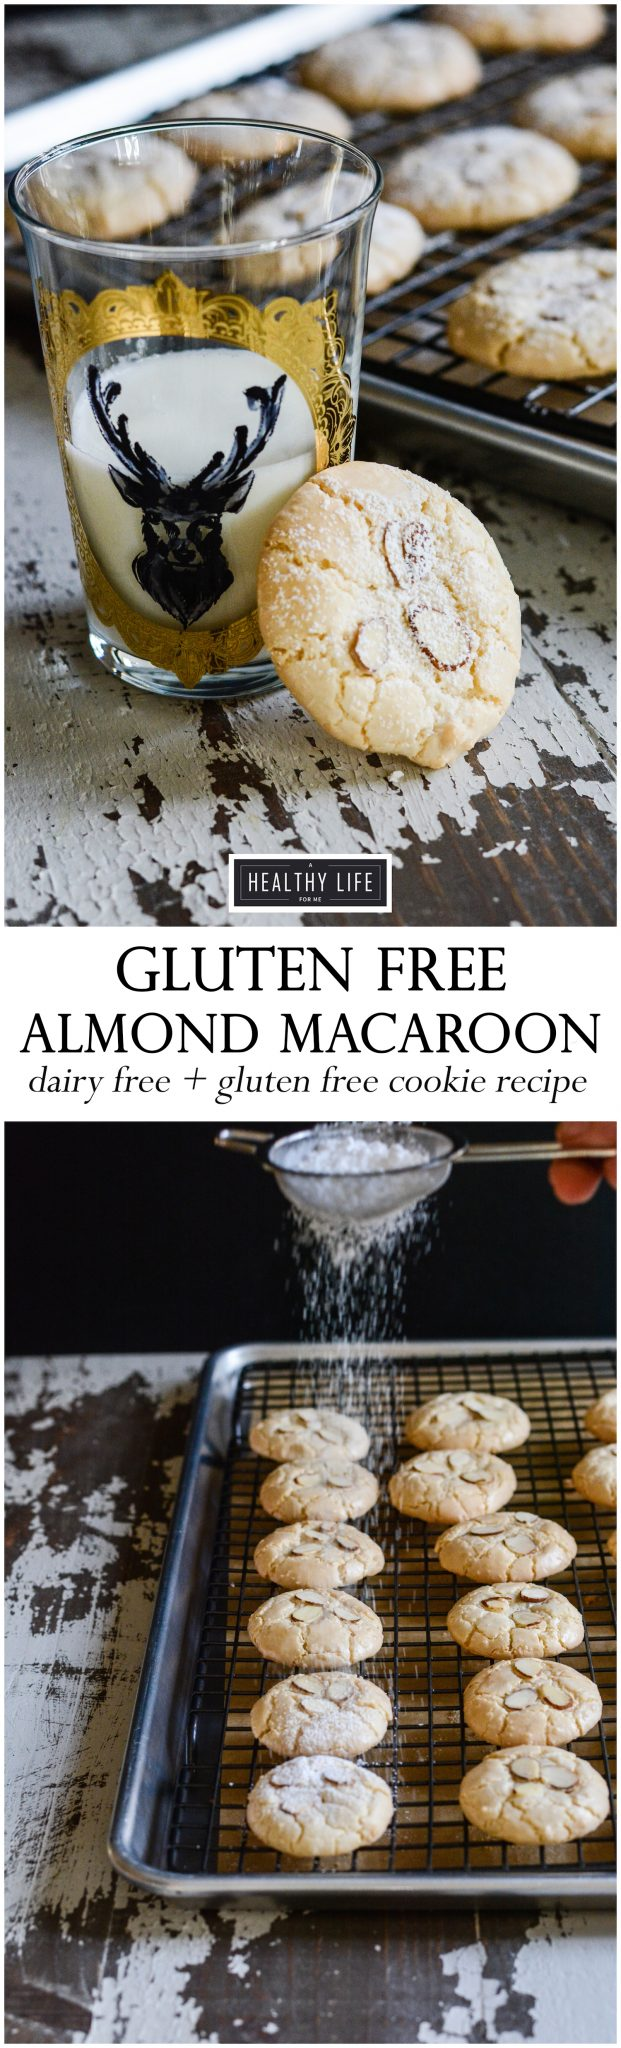 Perfect gluten free almond macaroon recipe | ahealthylifeforme.com